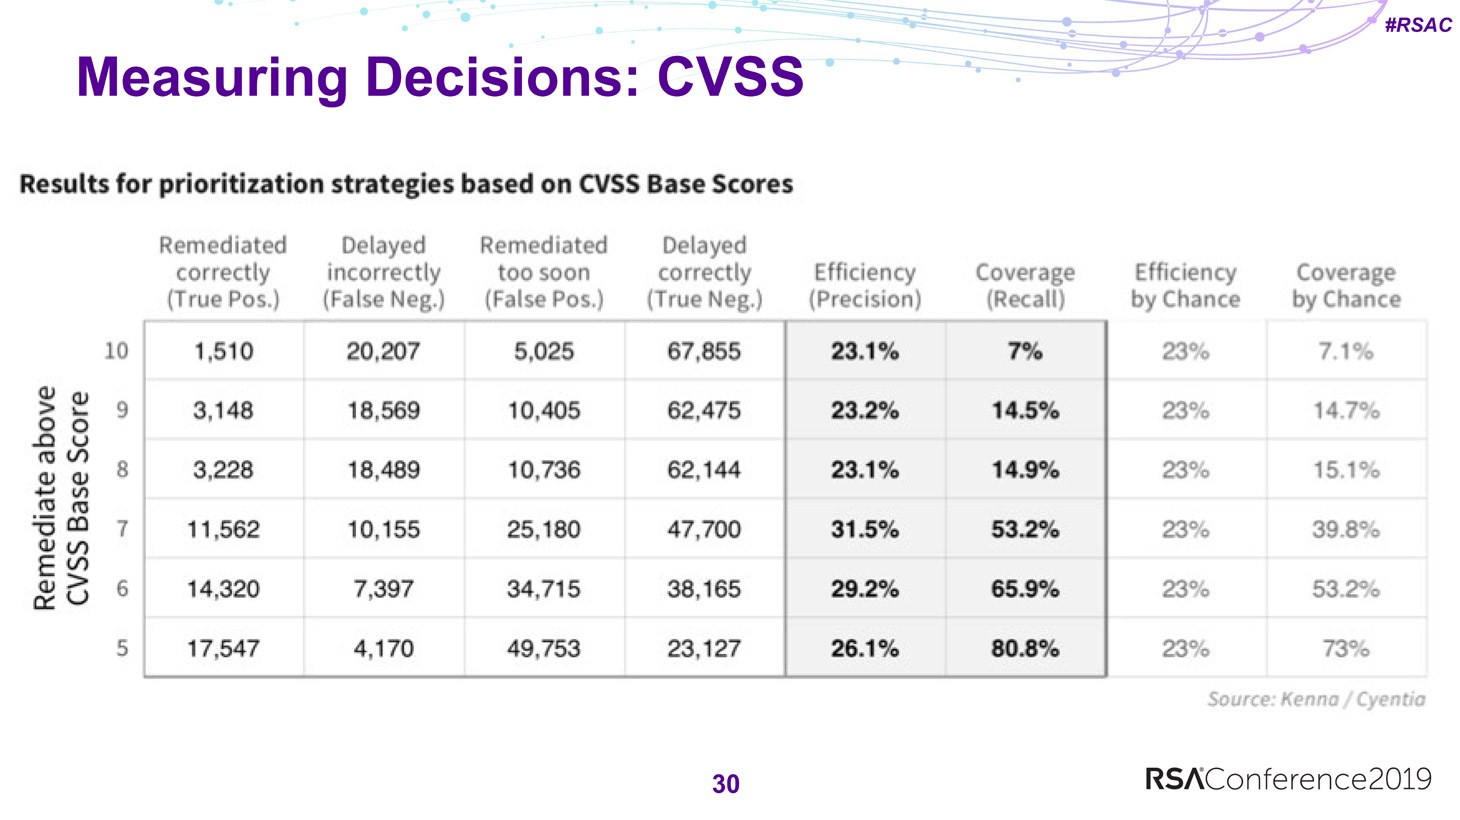 Comparing the relevance of CVSS-based patching strategies